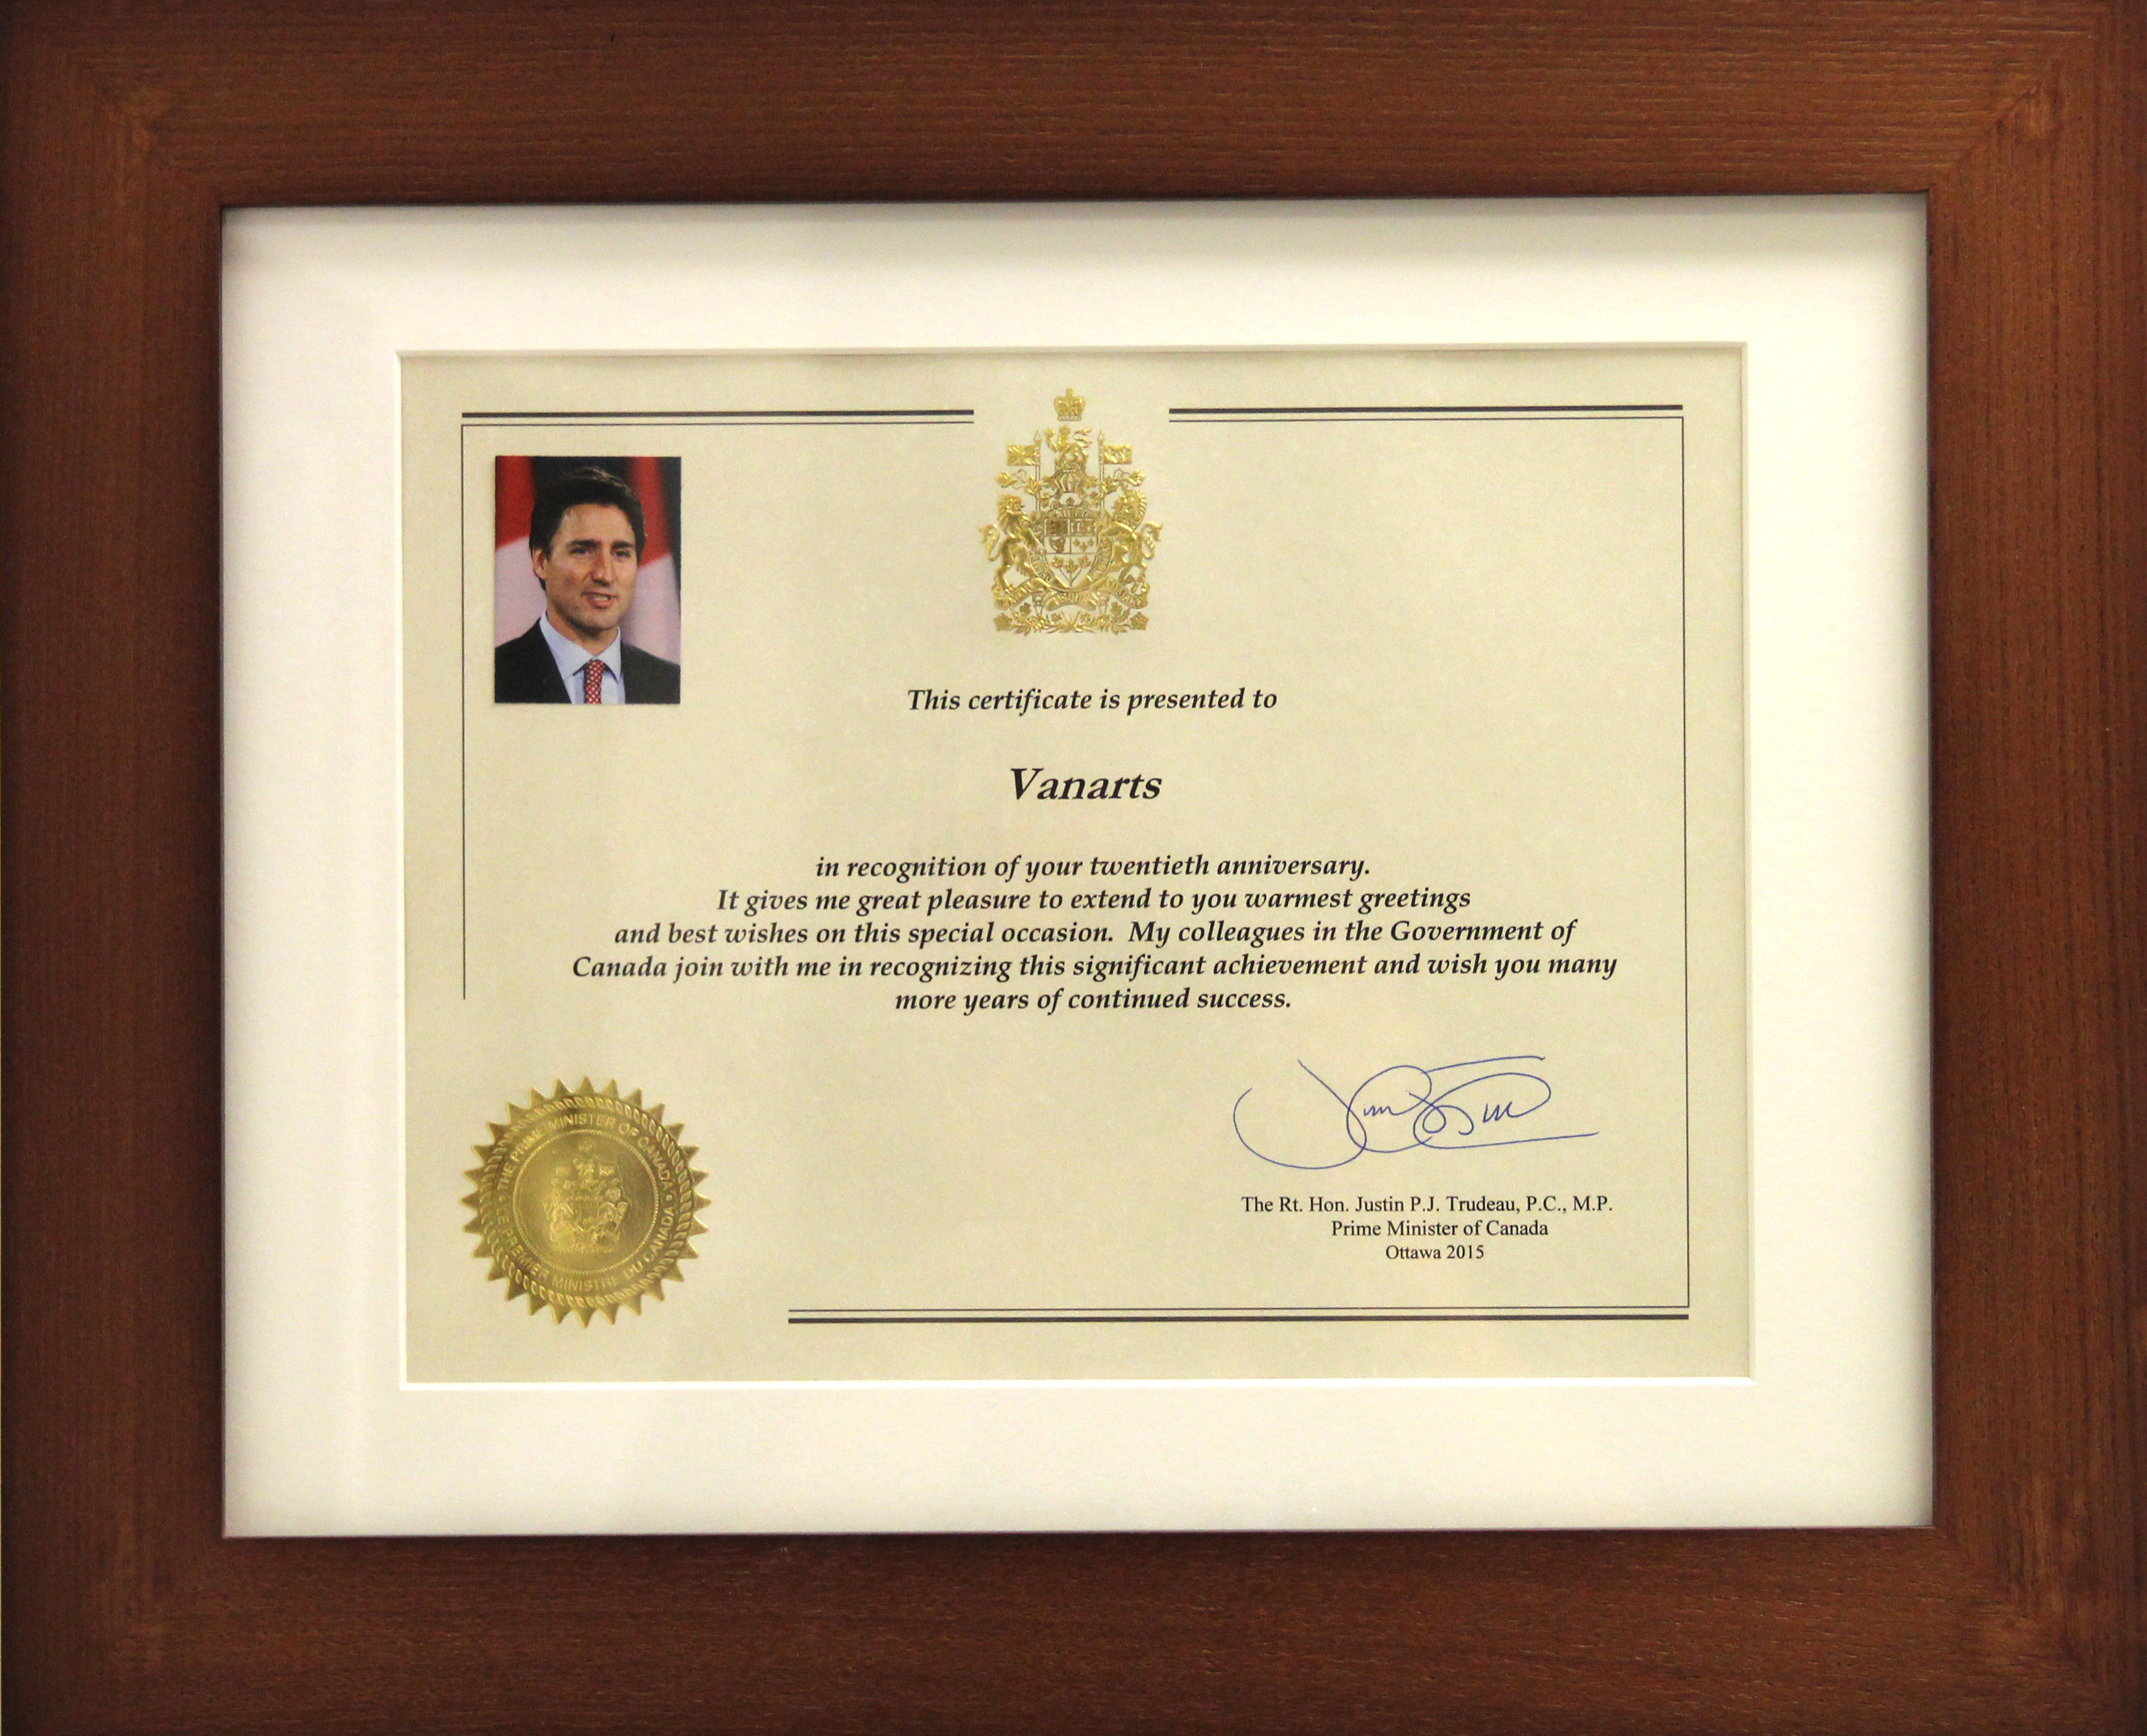 Prime Minister Of Canada Congratulates Vanarts On 20 Years